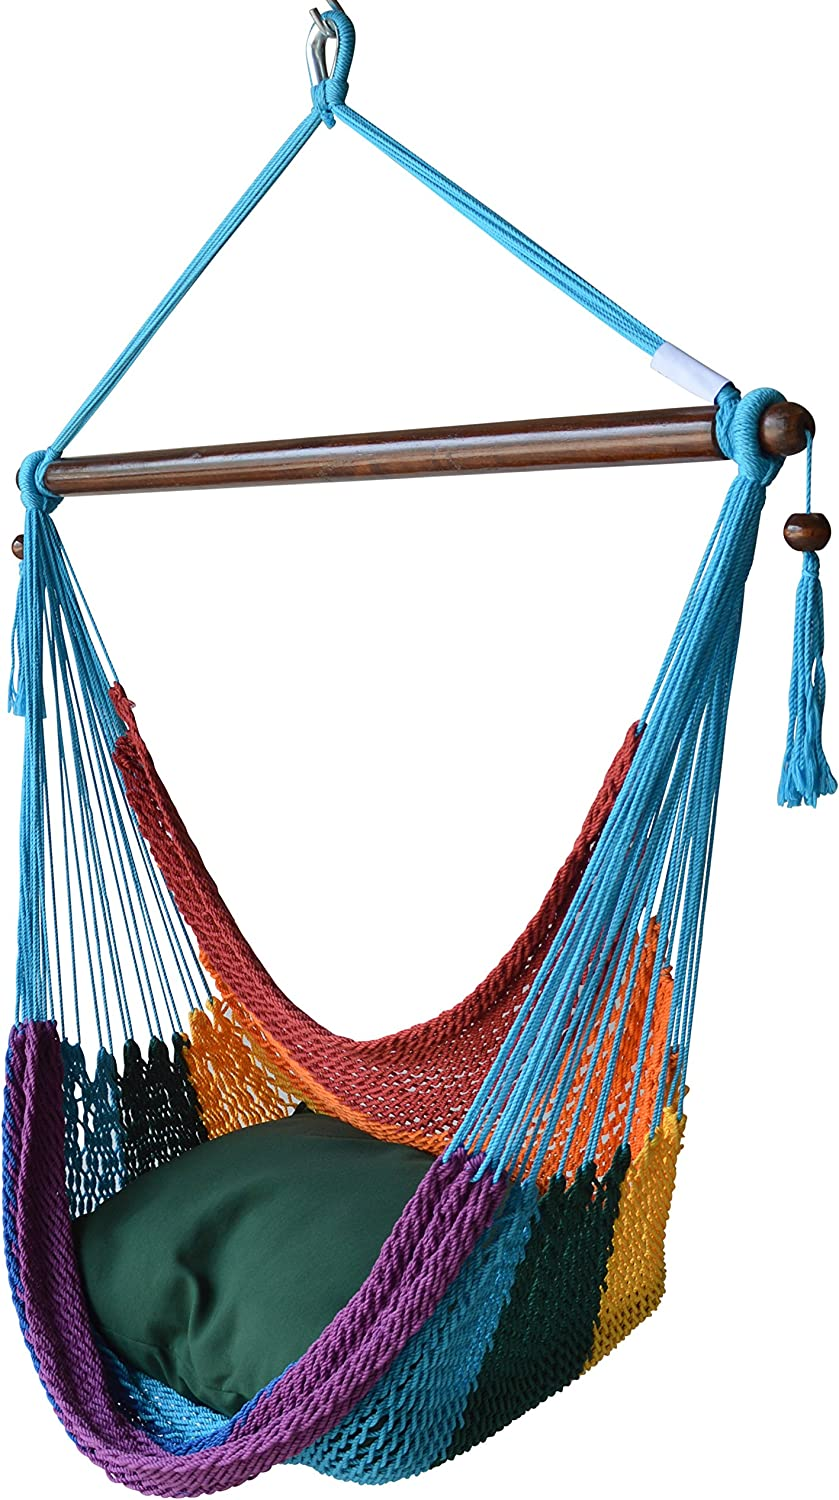 Caribbean Hammocks Hammock Chair with Footrest - 40 inch - Rainbow - 200 lbs Weight Capacity